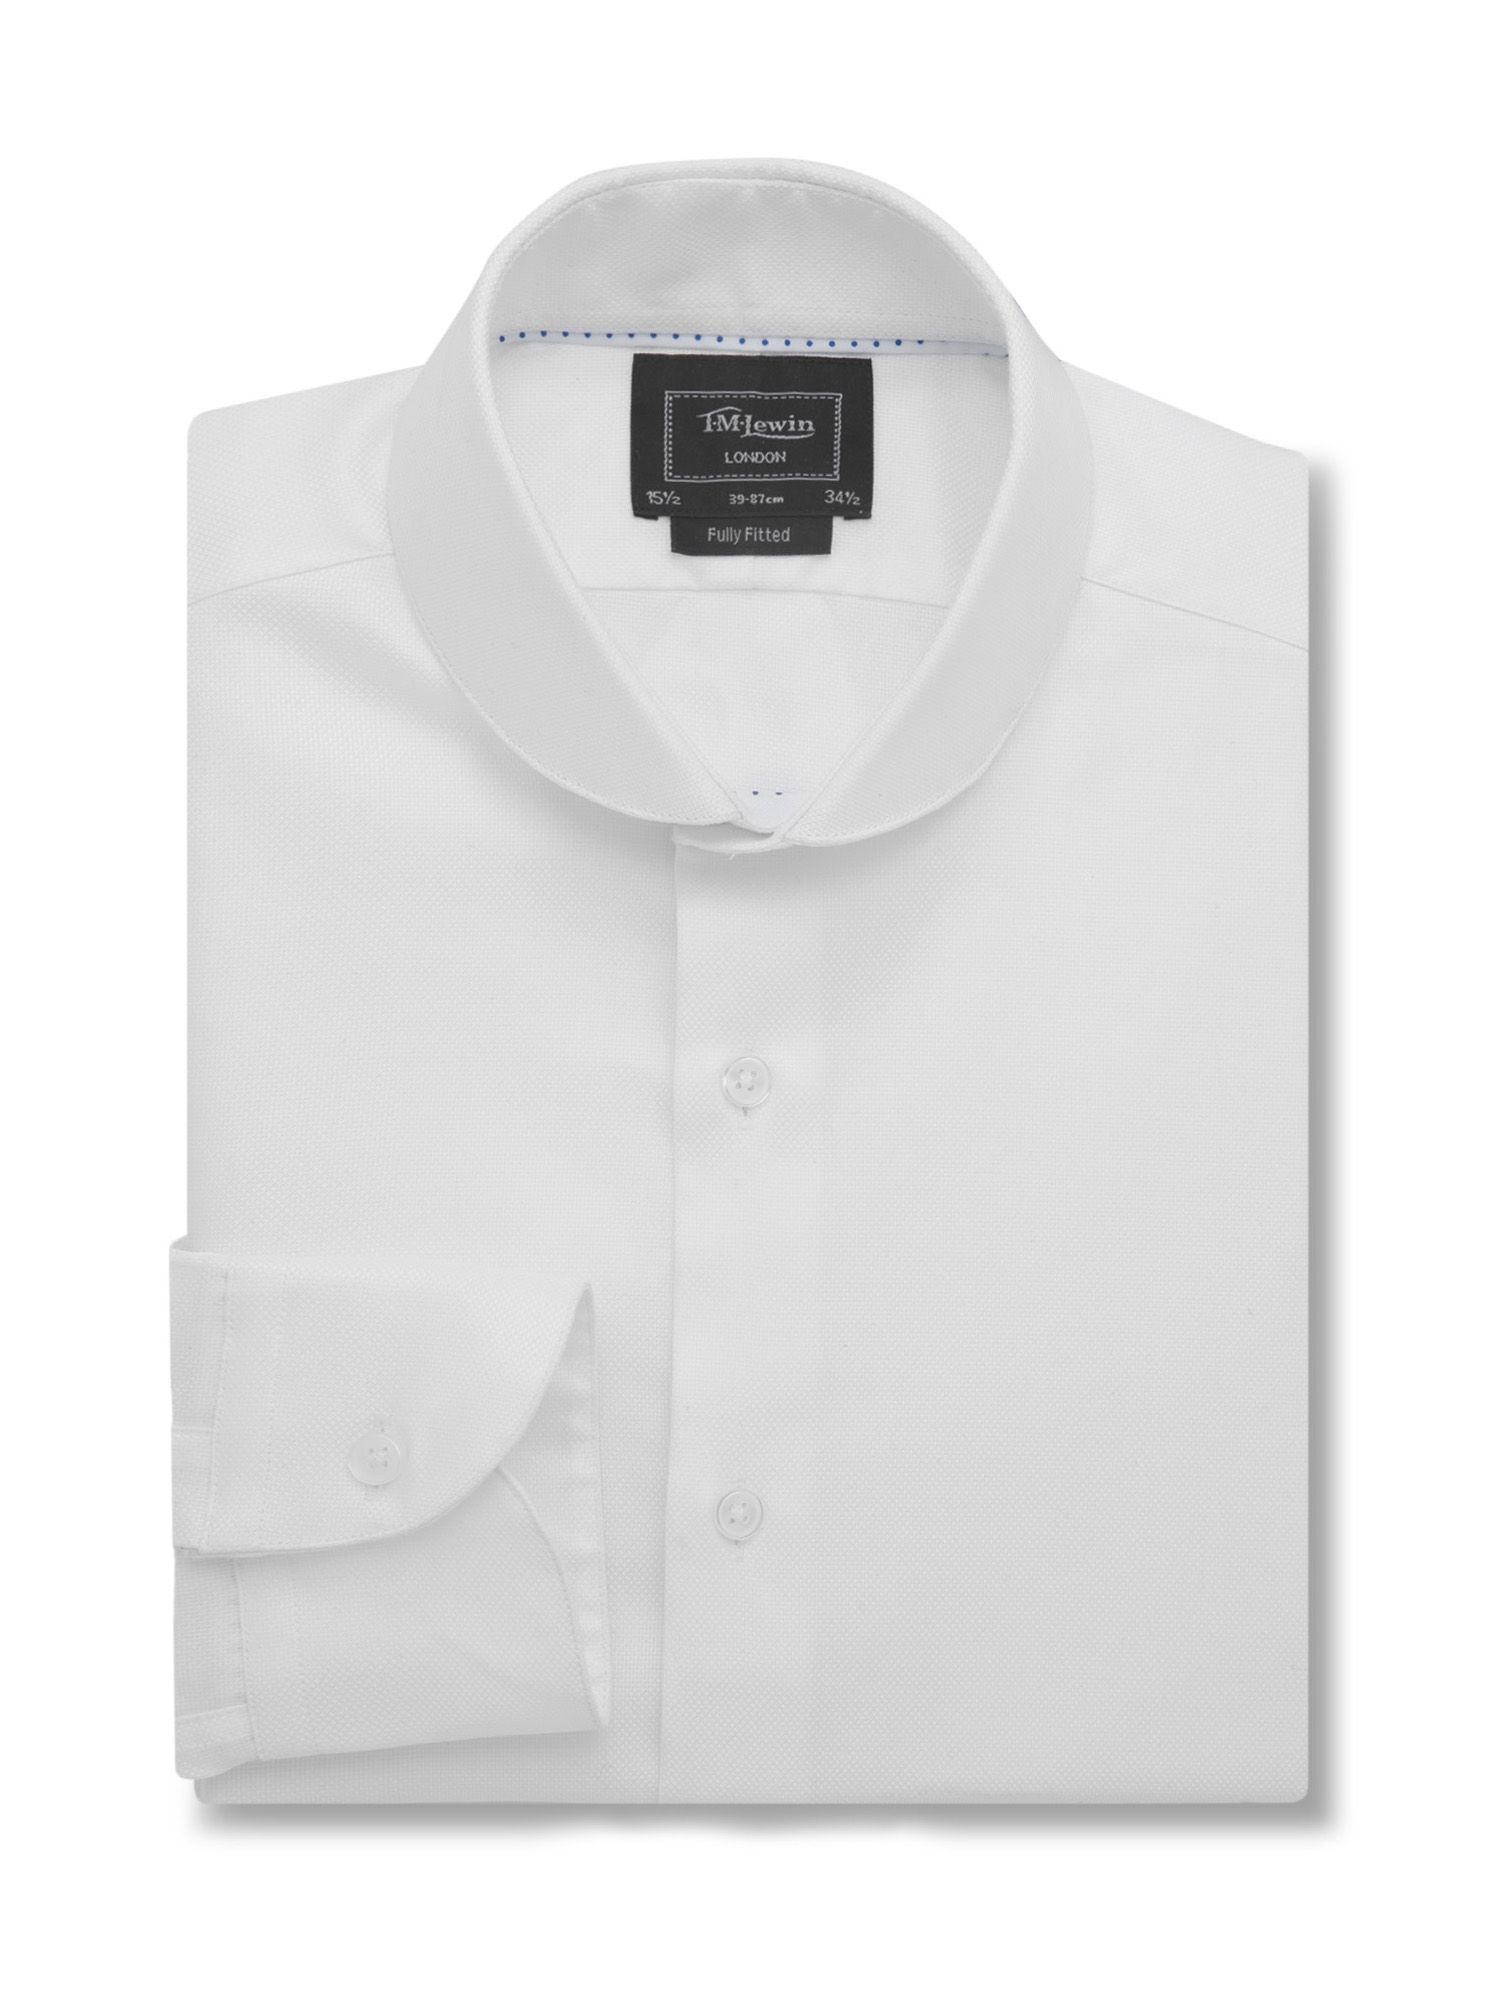 Fully fitted oxford round cutaway collar shirt